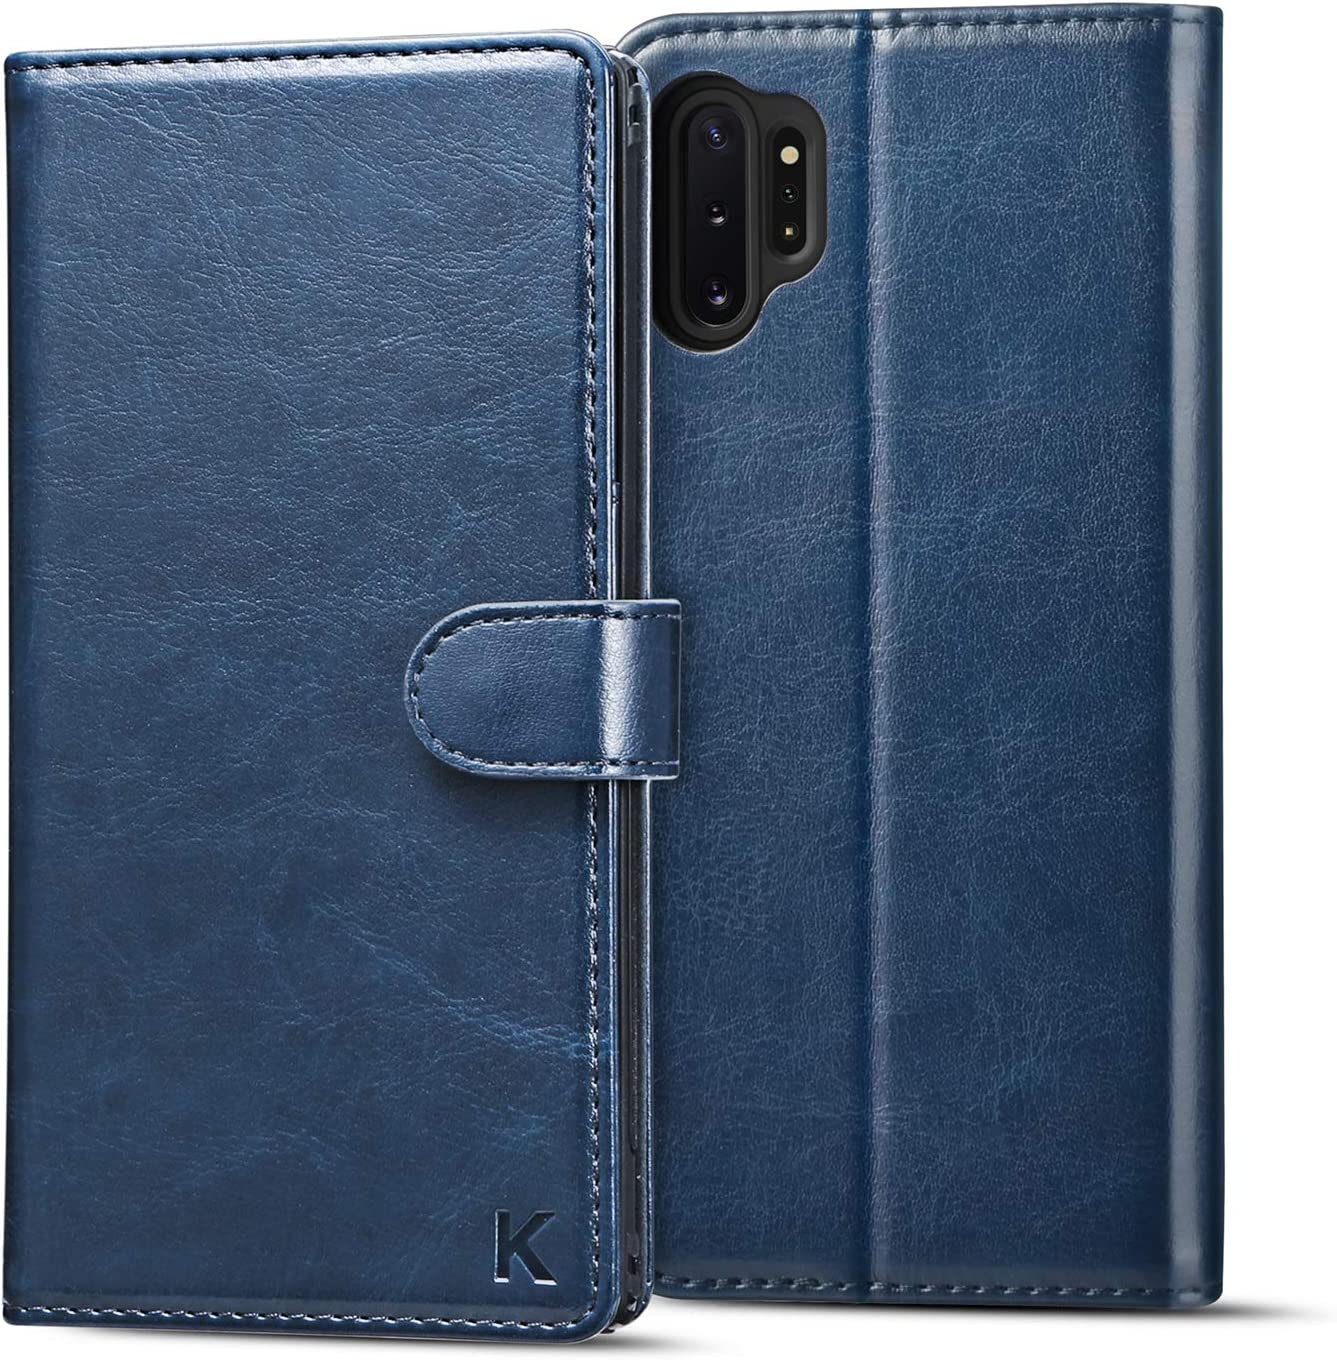 KILINO Galaxy Note 10 Plus 5G Wallet Case [S-Pen Fully Compatible][PU Leather + TPU][RFID Blocking][Shock-Absorbent Bumper][Card Slots][Kickstand] Flip Folio Cover for Samsung Galaxy Note10+ 5G (Blue)